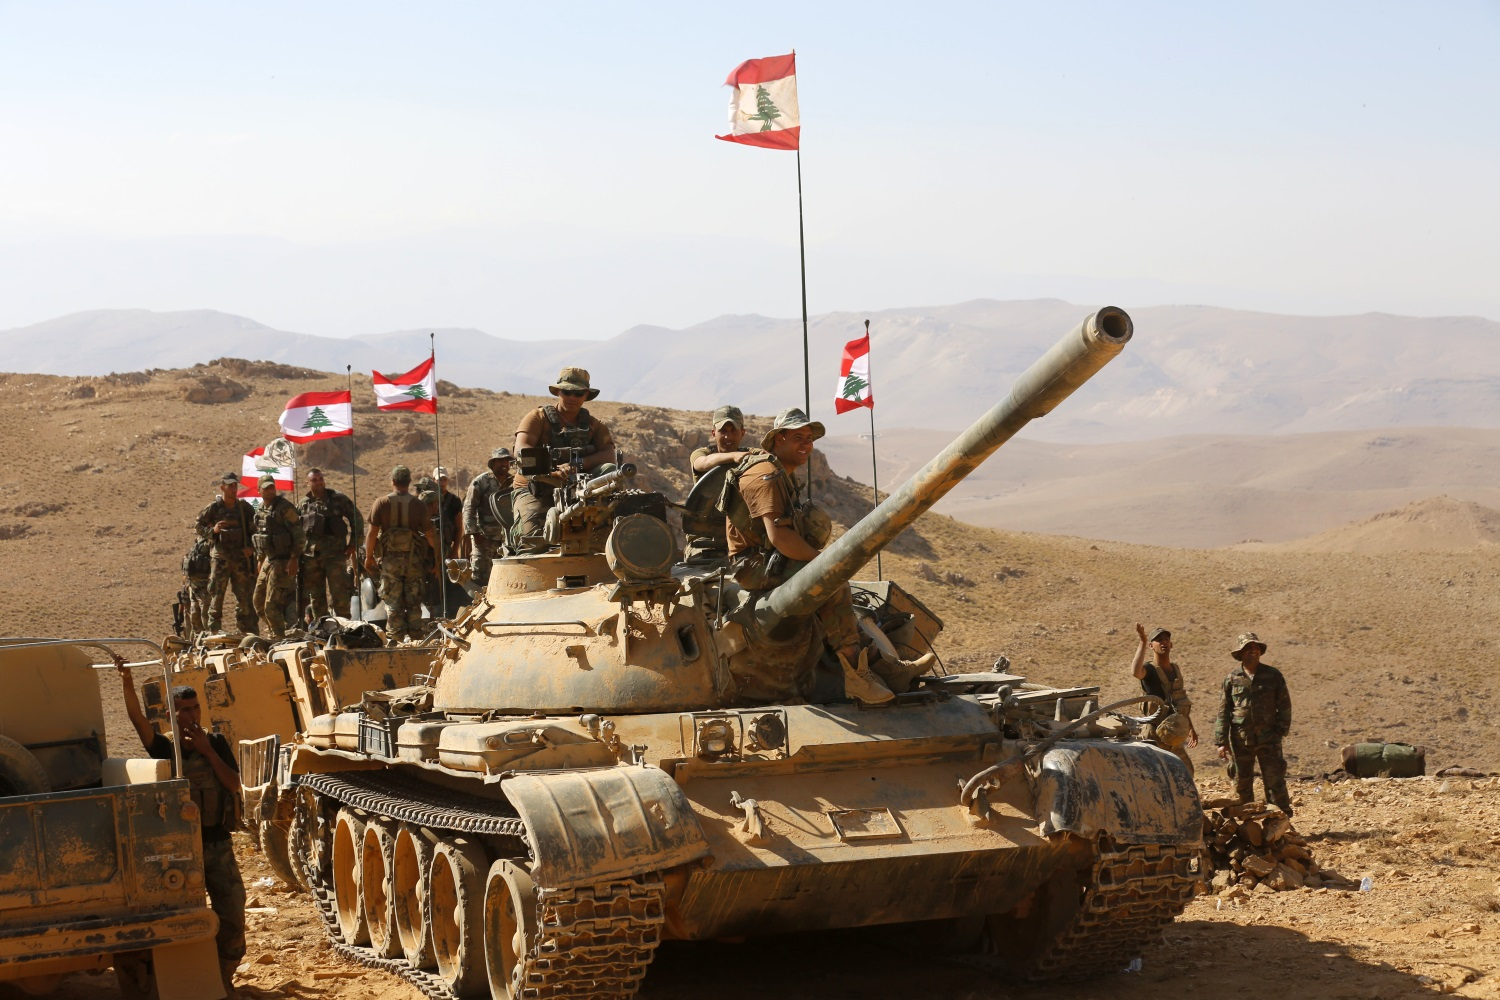 After deal, ISIS allowed to leave Syria-Lebanon border area